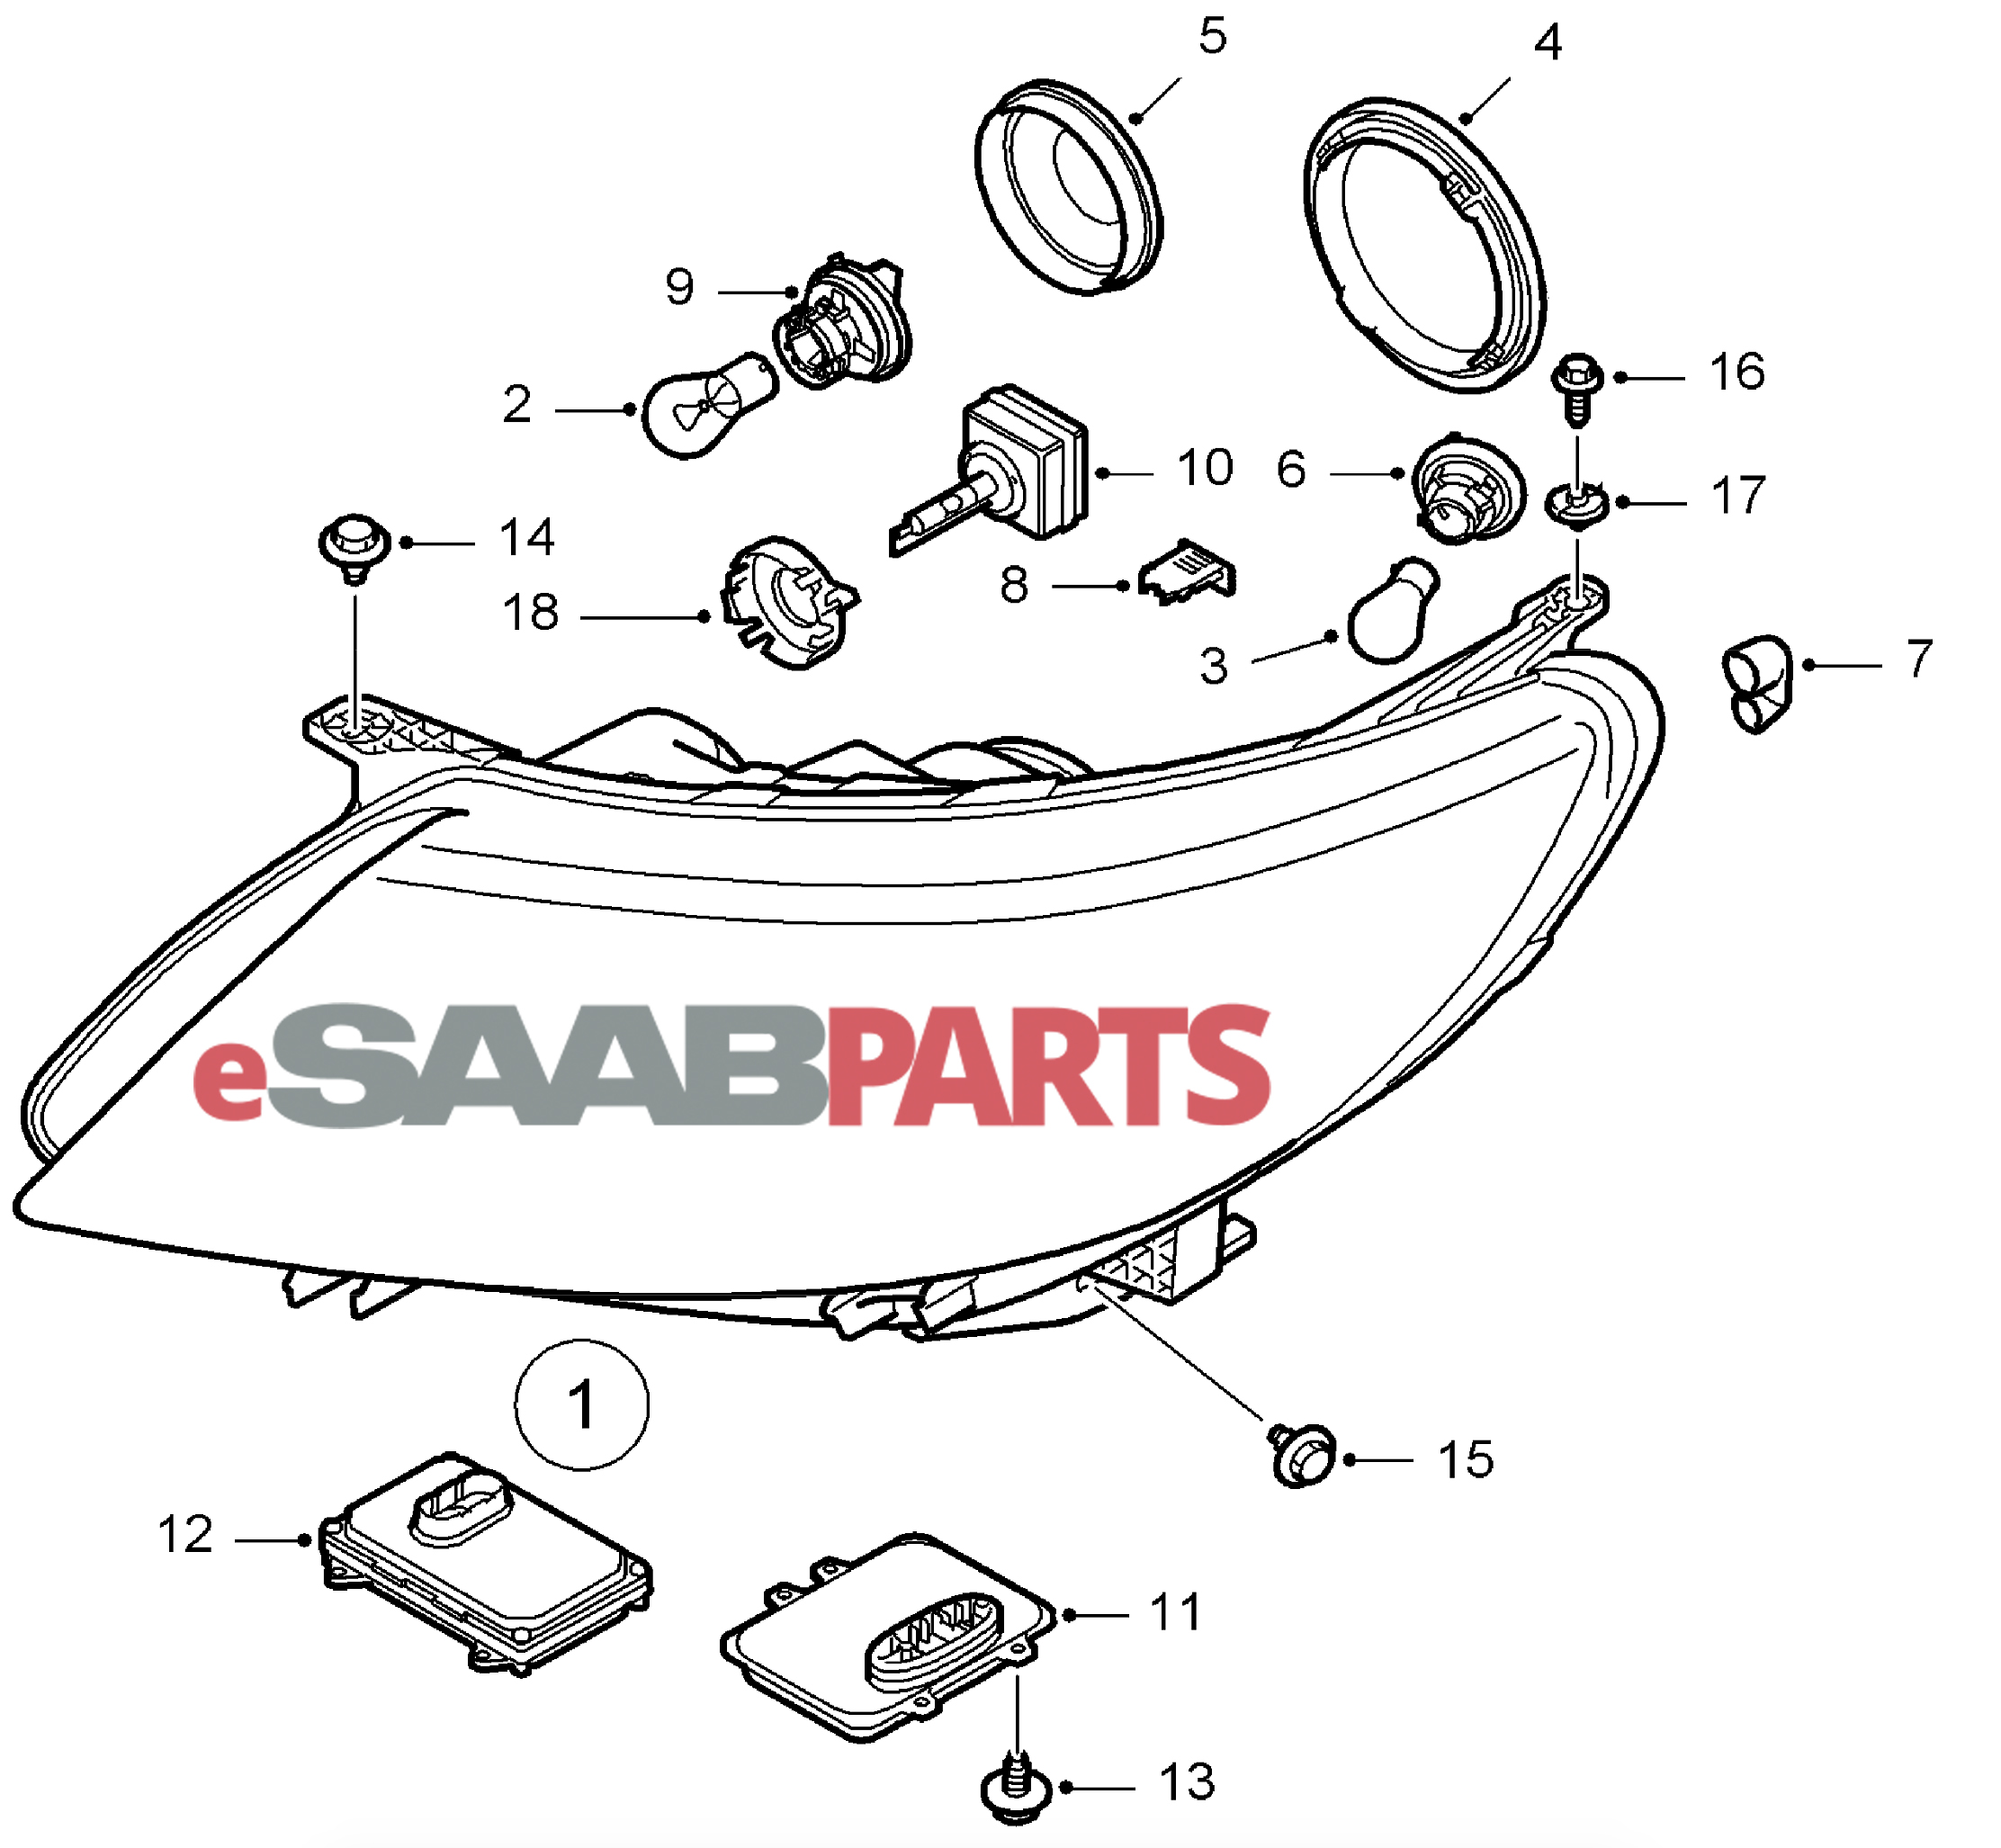 Saab Audio Wiring Diagram. Saab. Auto Wiring Diagram